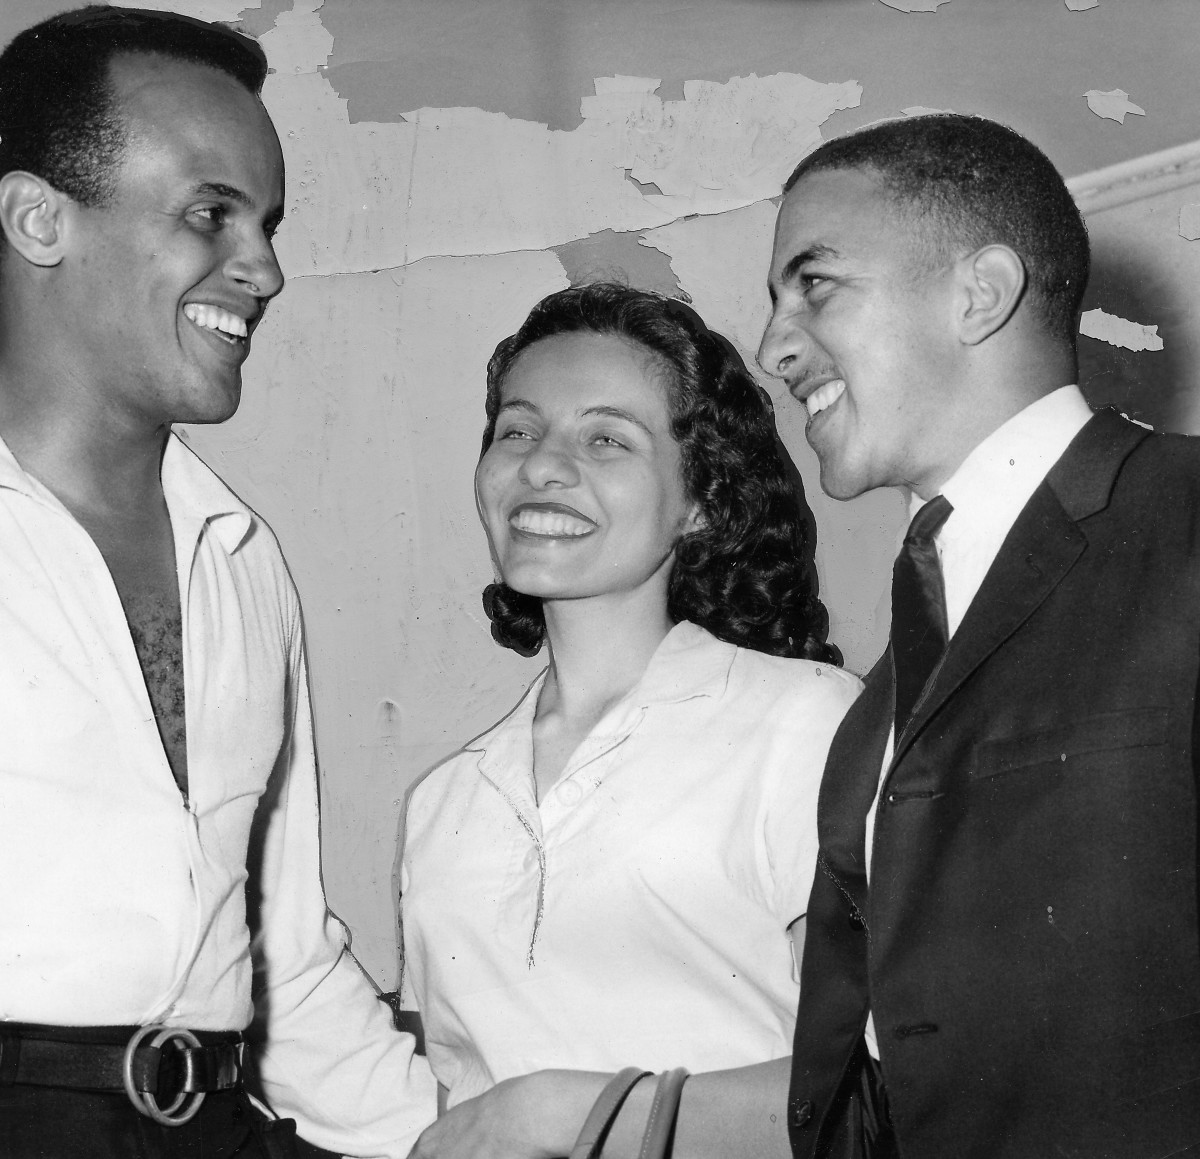 Musician and actor Harry Belafonte with Freedom Riders Diane Nash and Charles Jones, discussing the Freedom Riders movement, 1961.